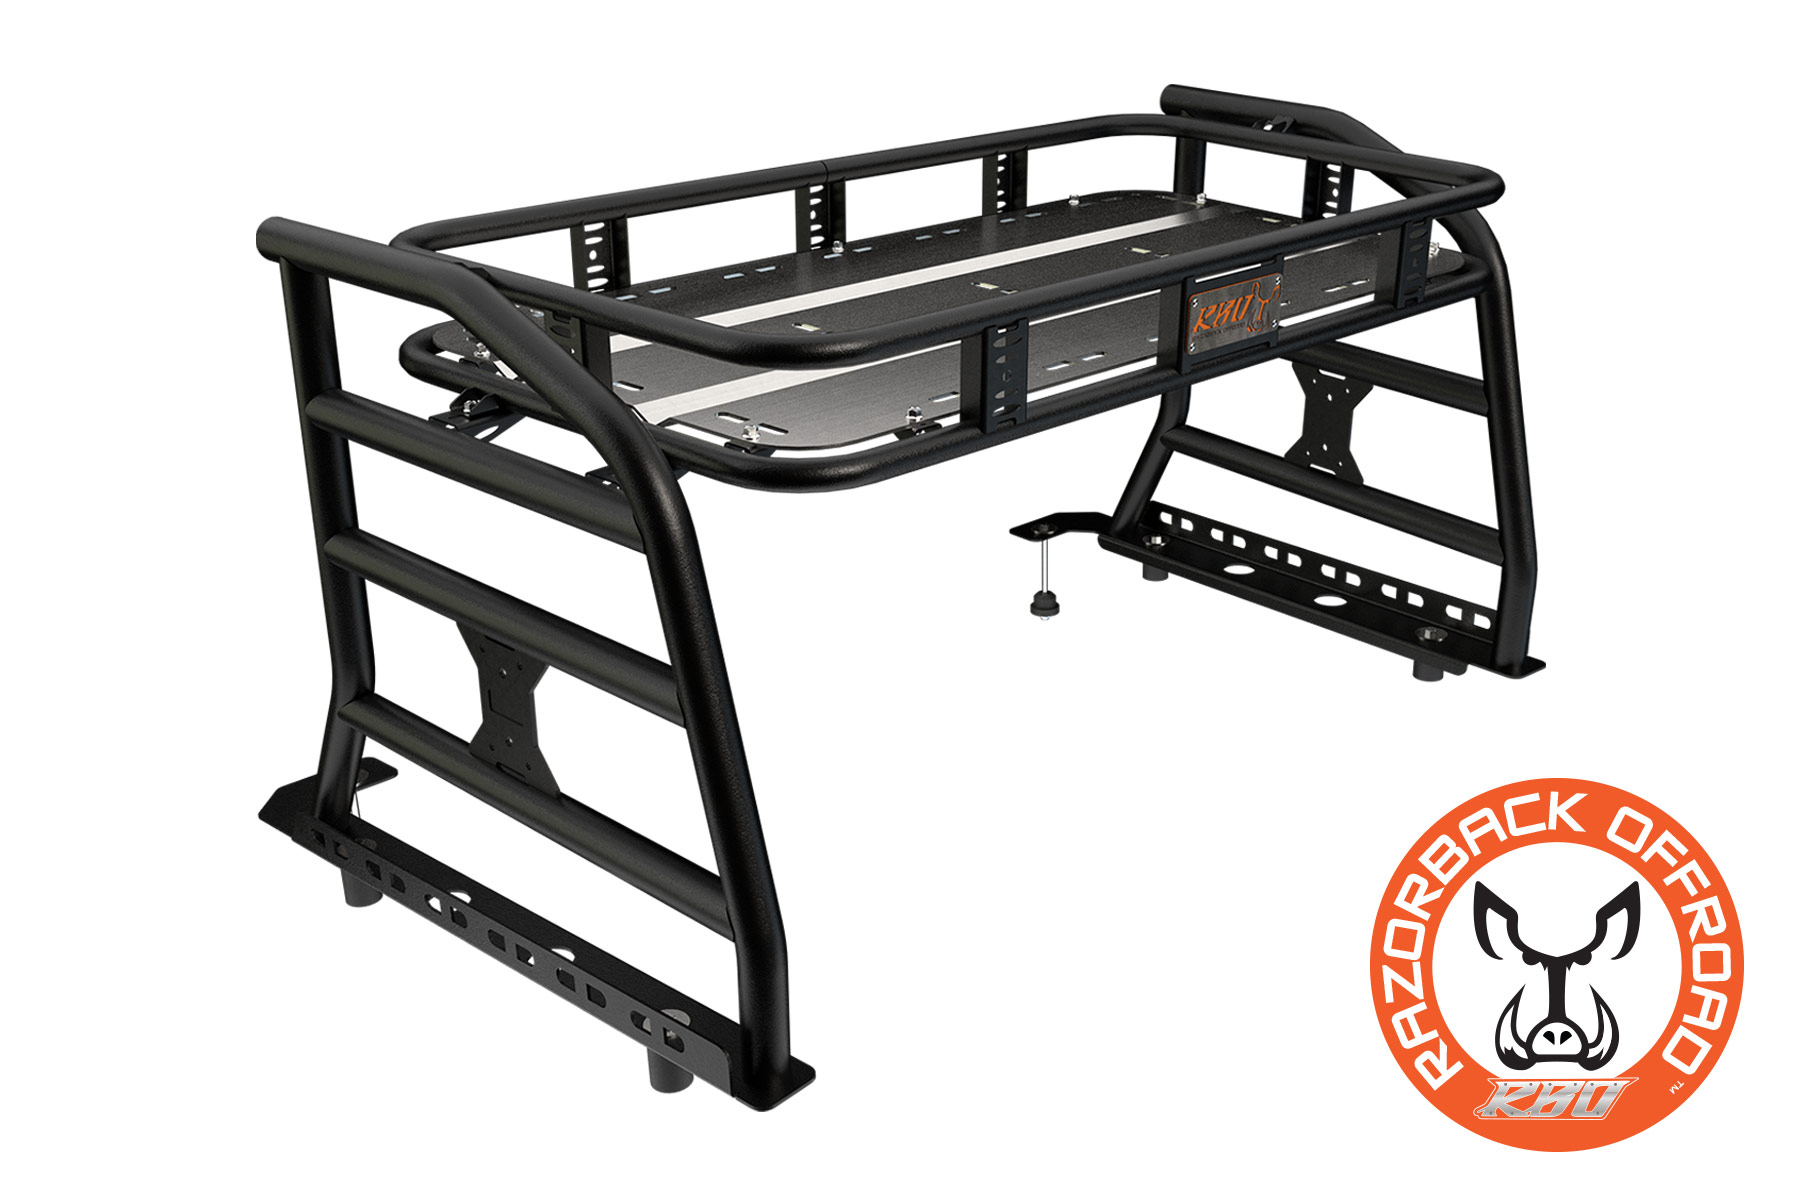 Polaris General Gp Rack General Purpose